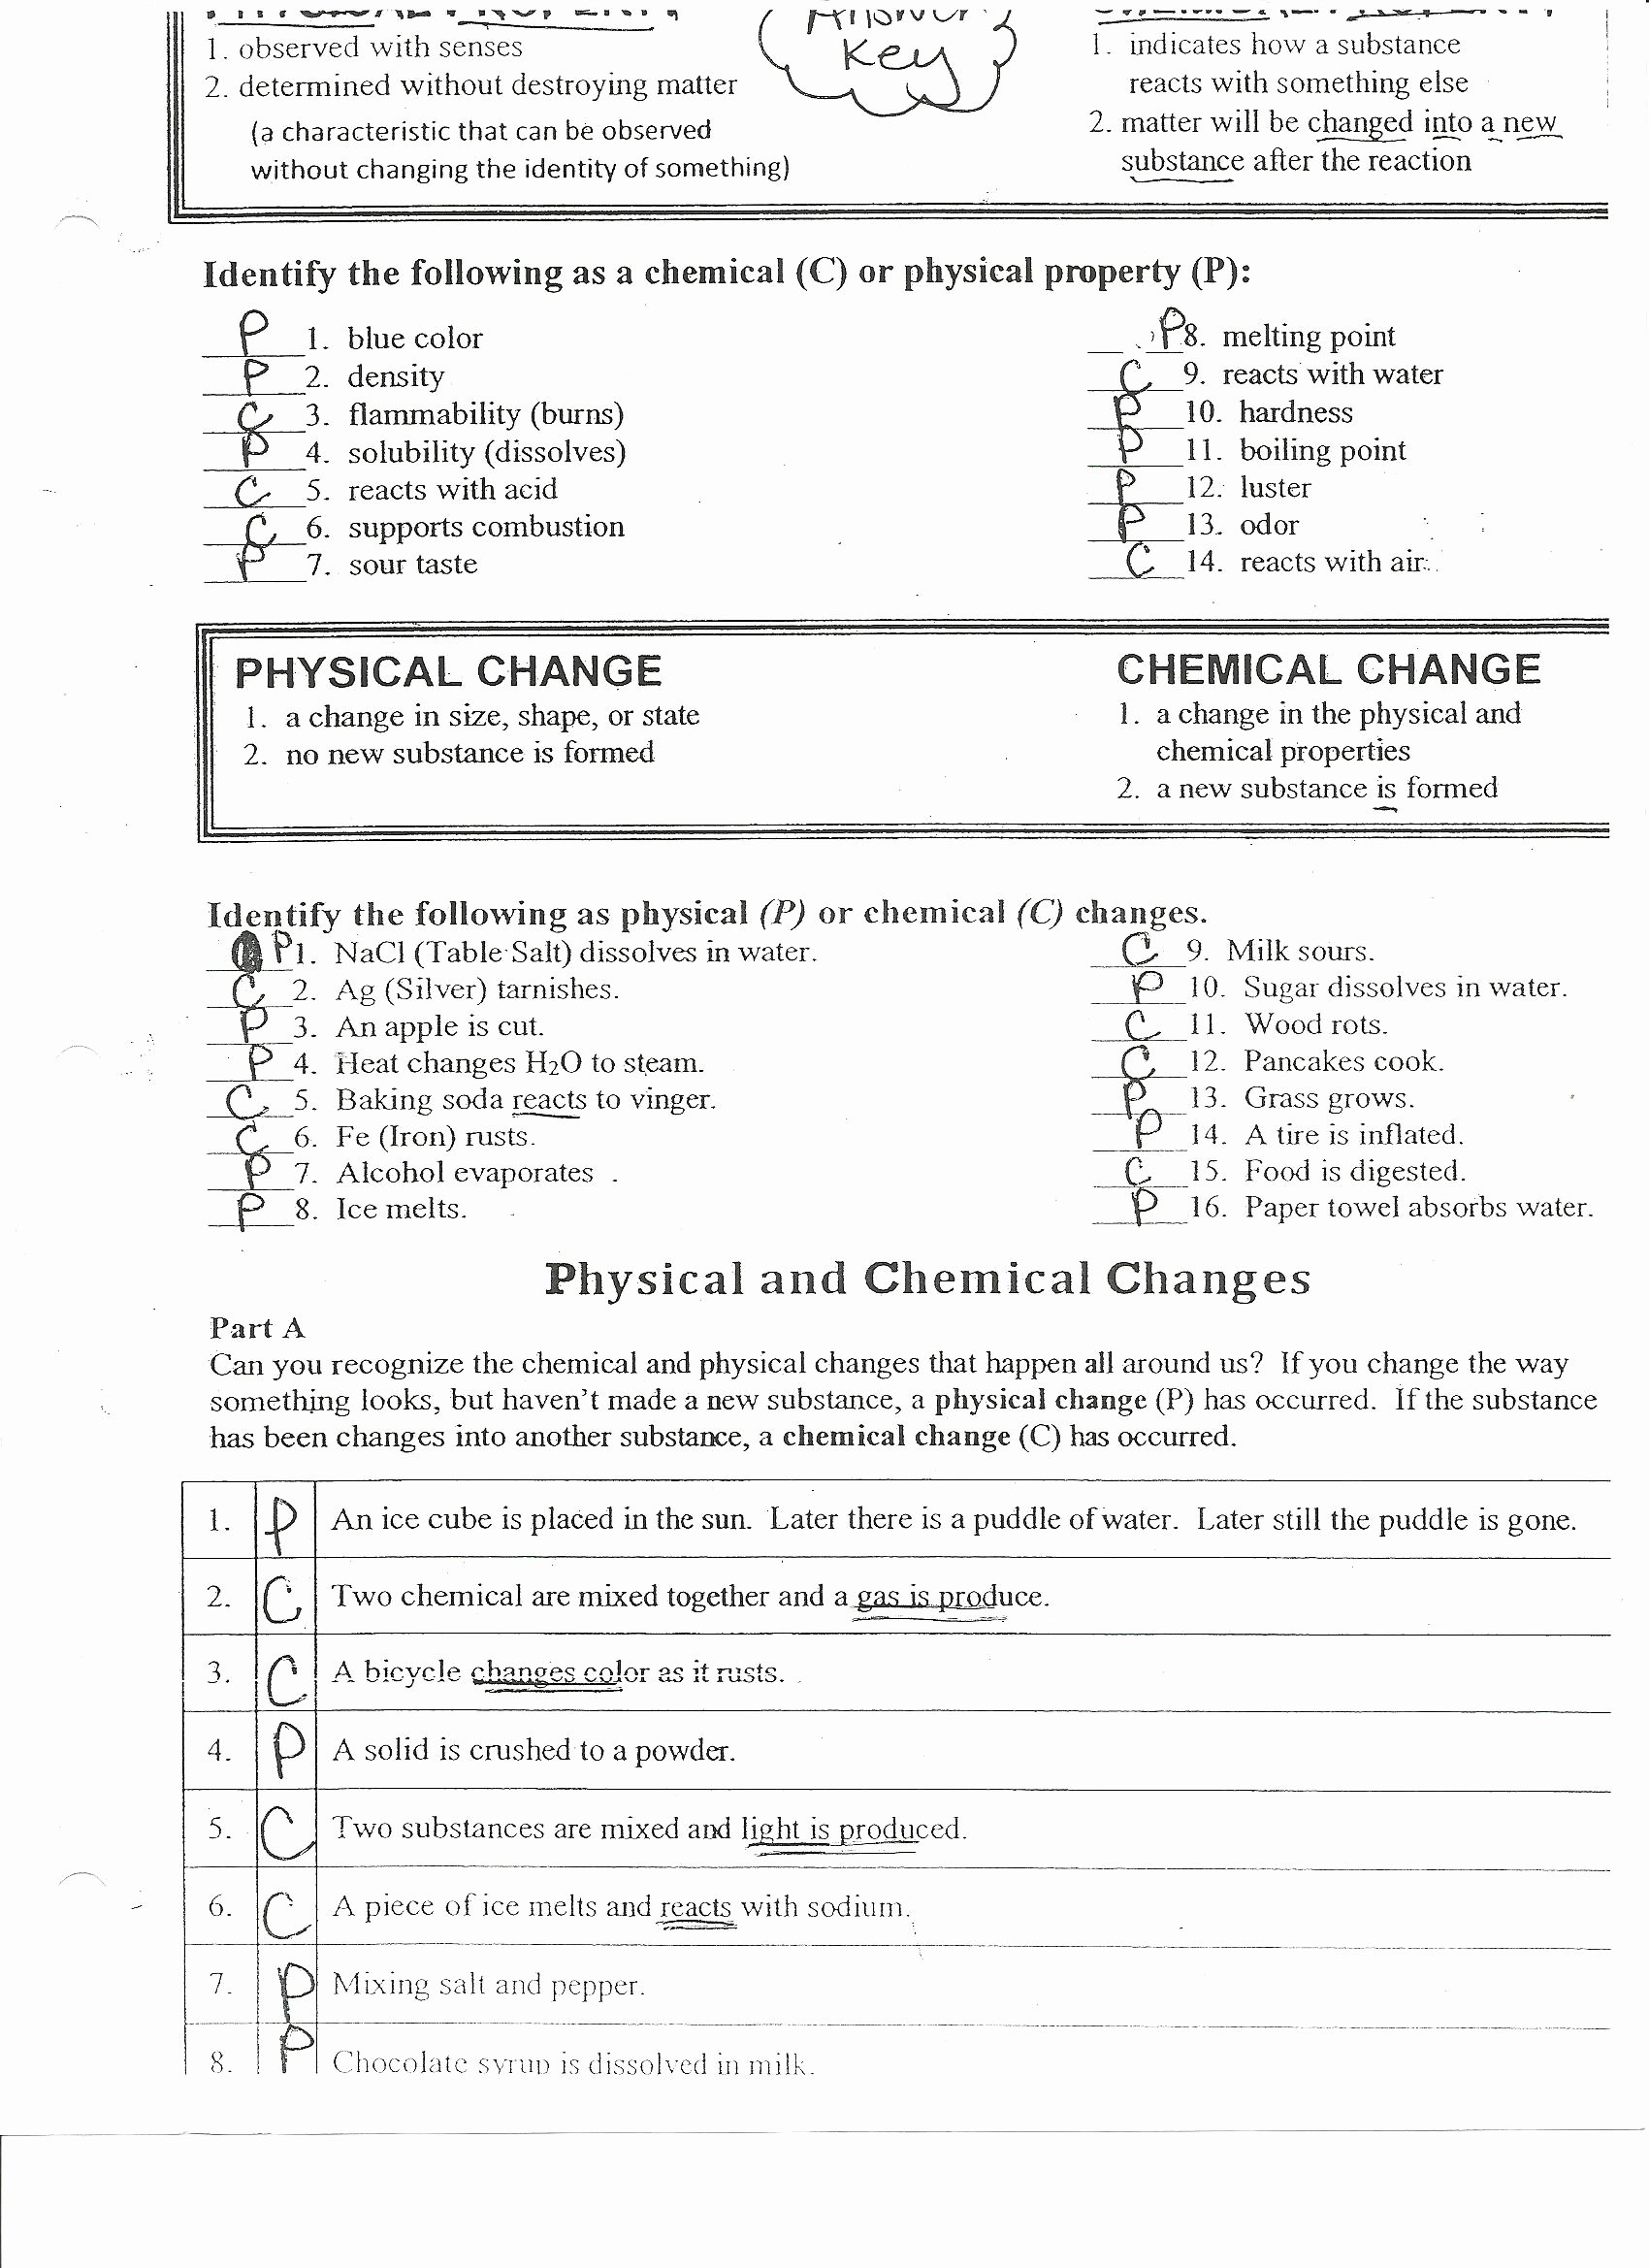 50 Physical And Chemical Change Worksheet